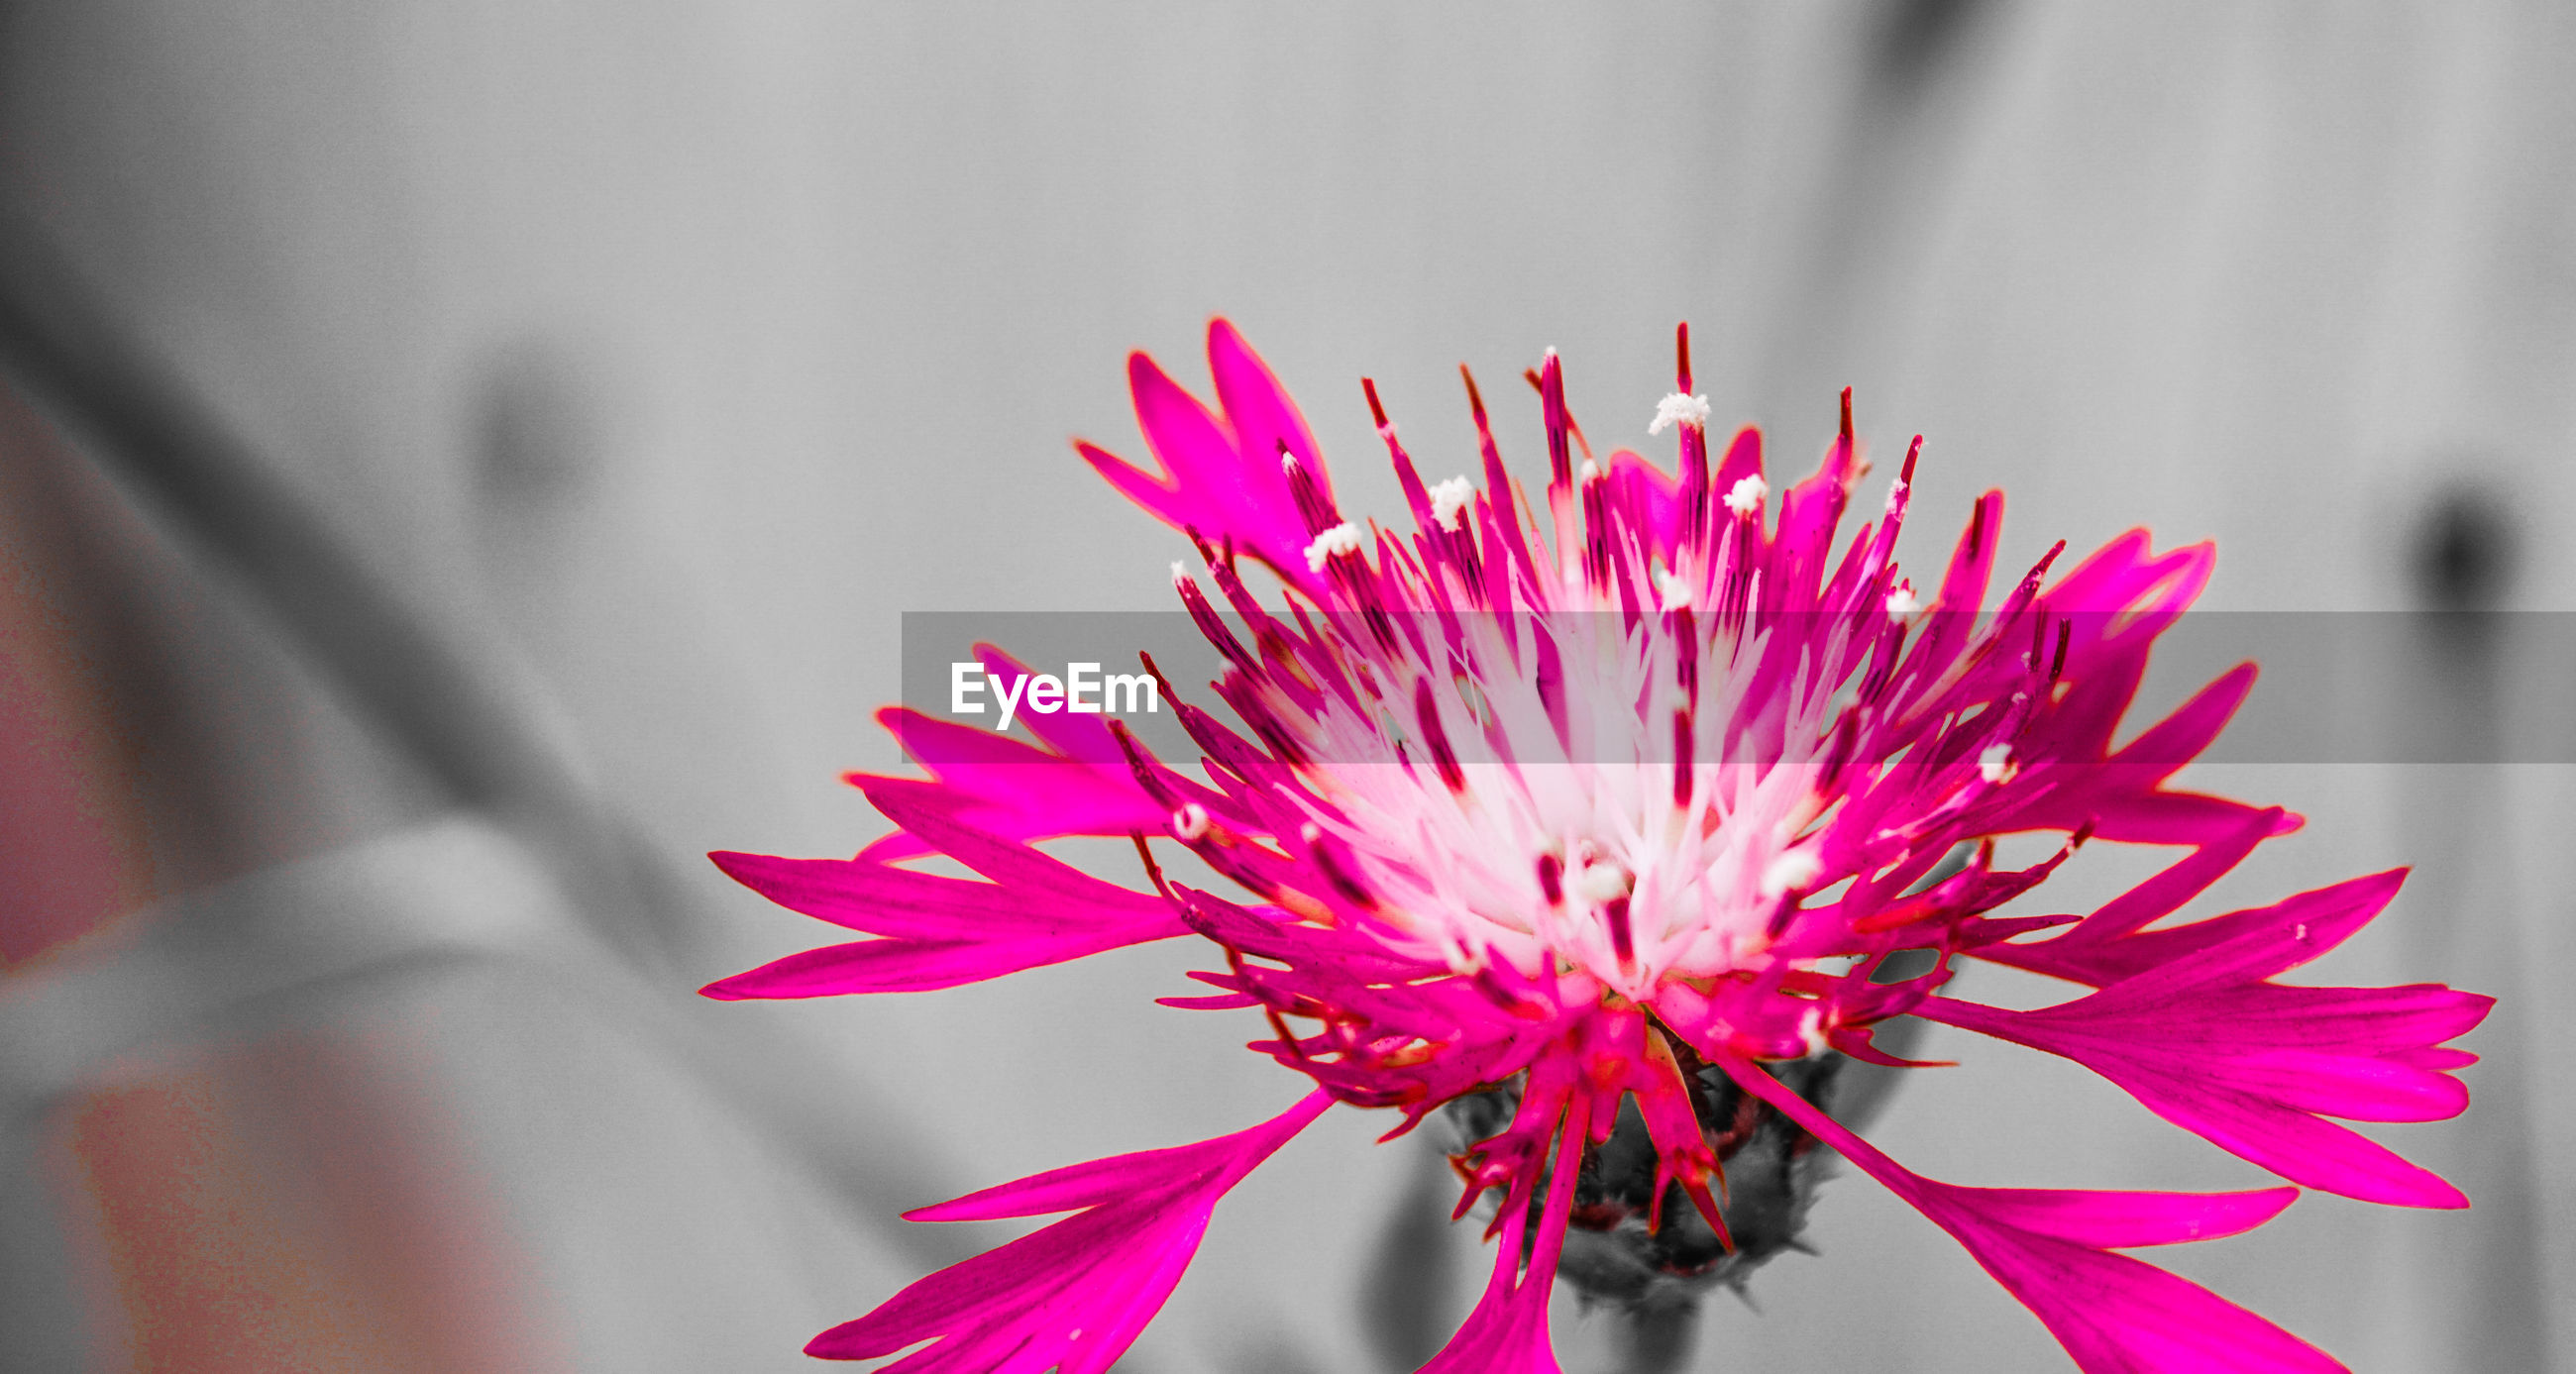 flower, petal, fragility, pink color, close-up, beauty in nature, flower head, nature, freshness, focus on foreground, no people, day, growth, outdoors